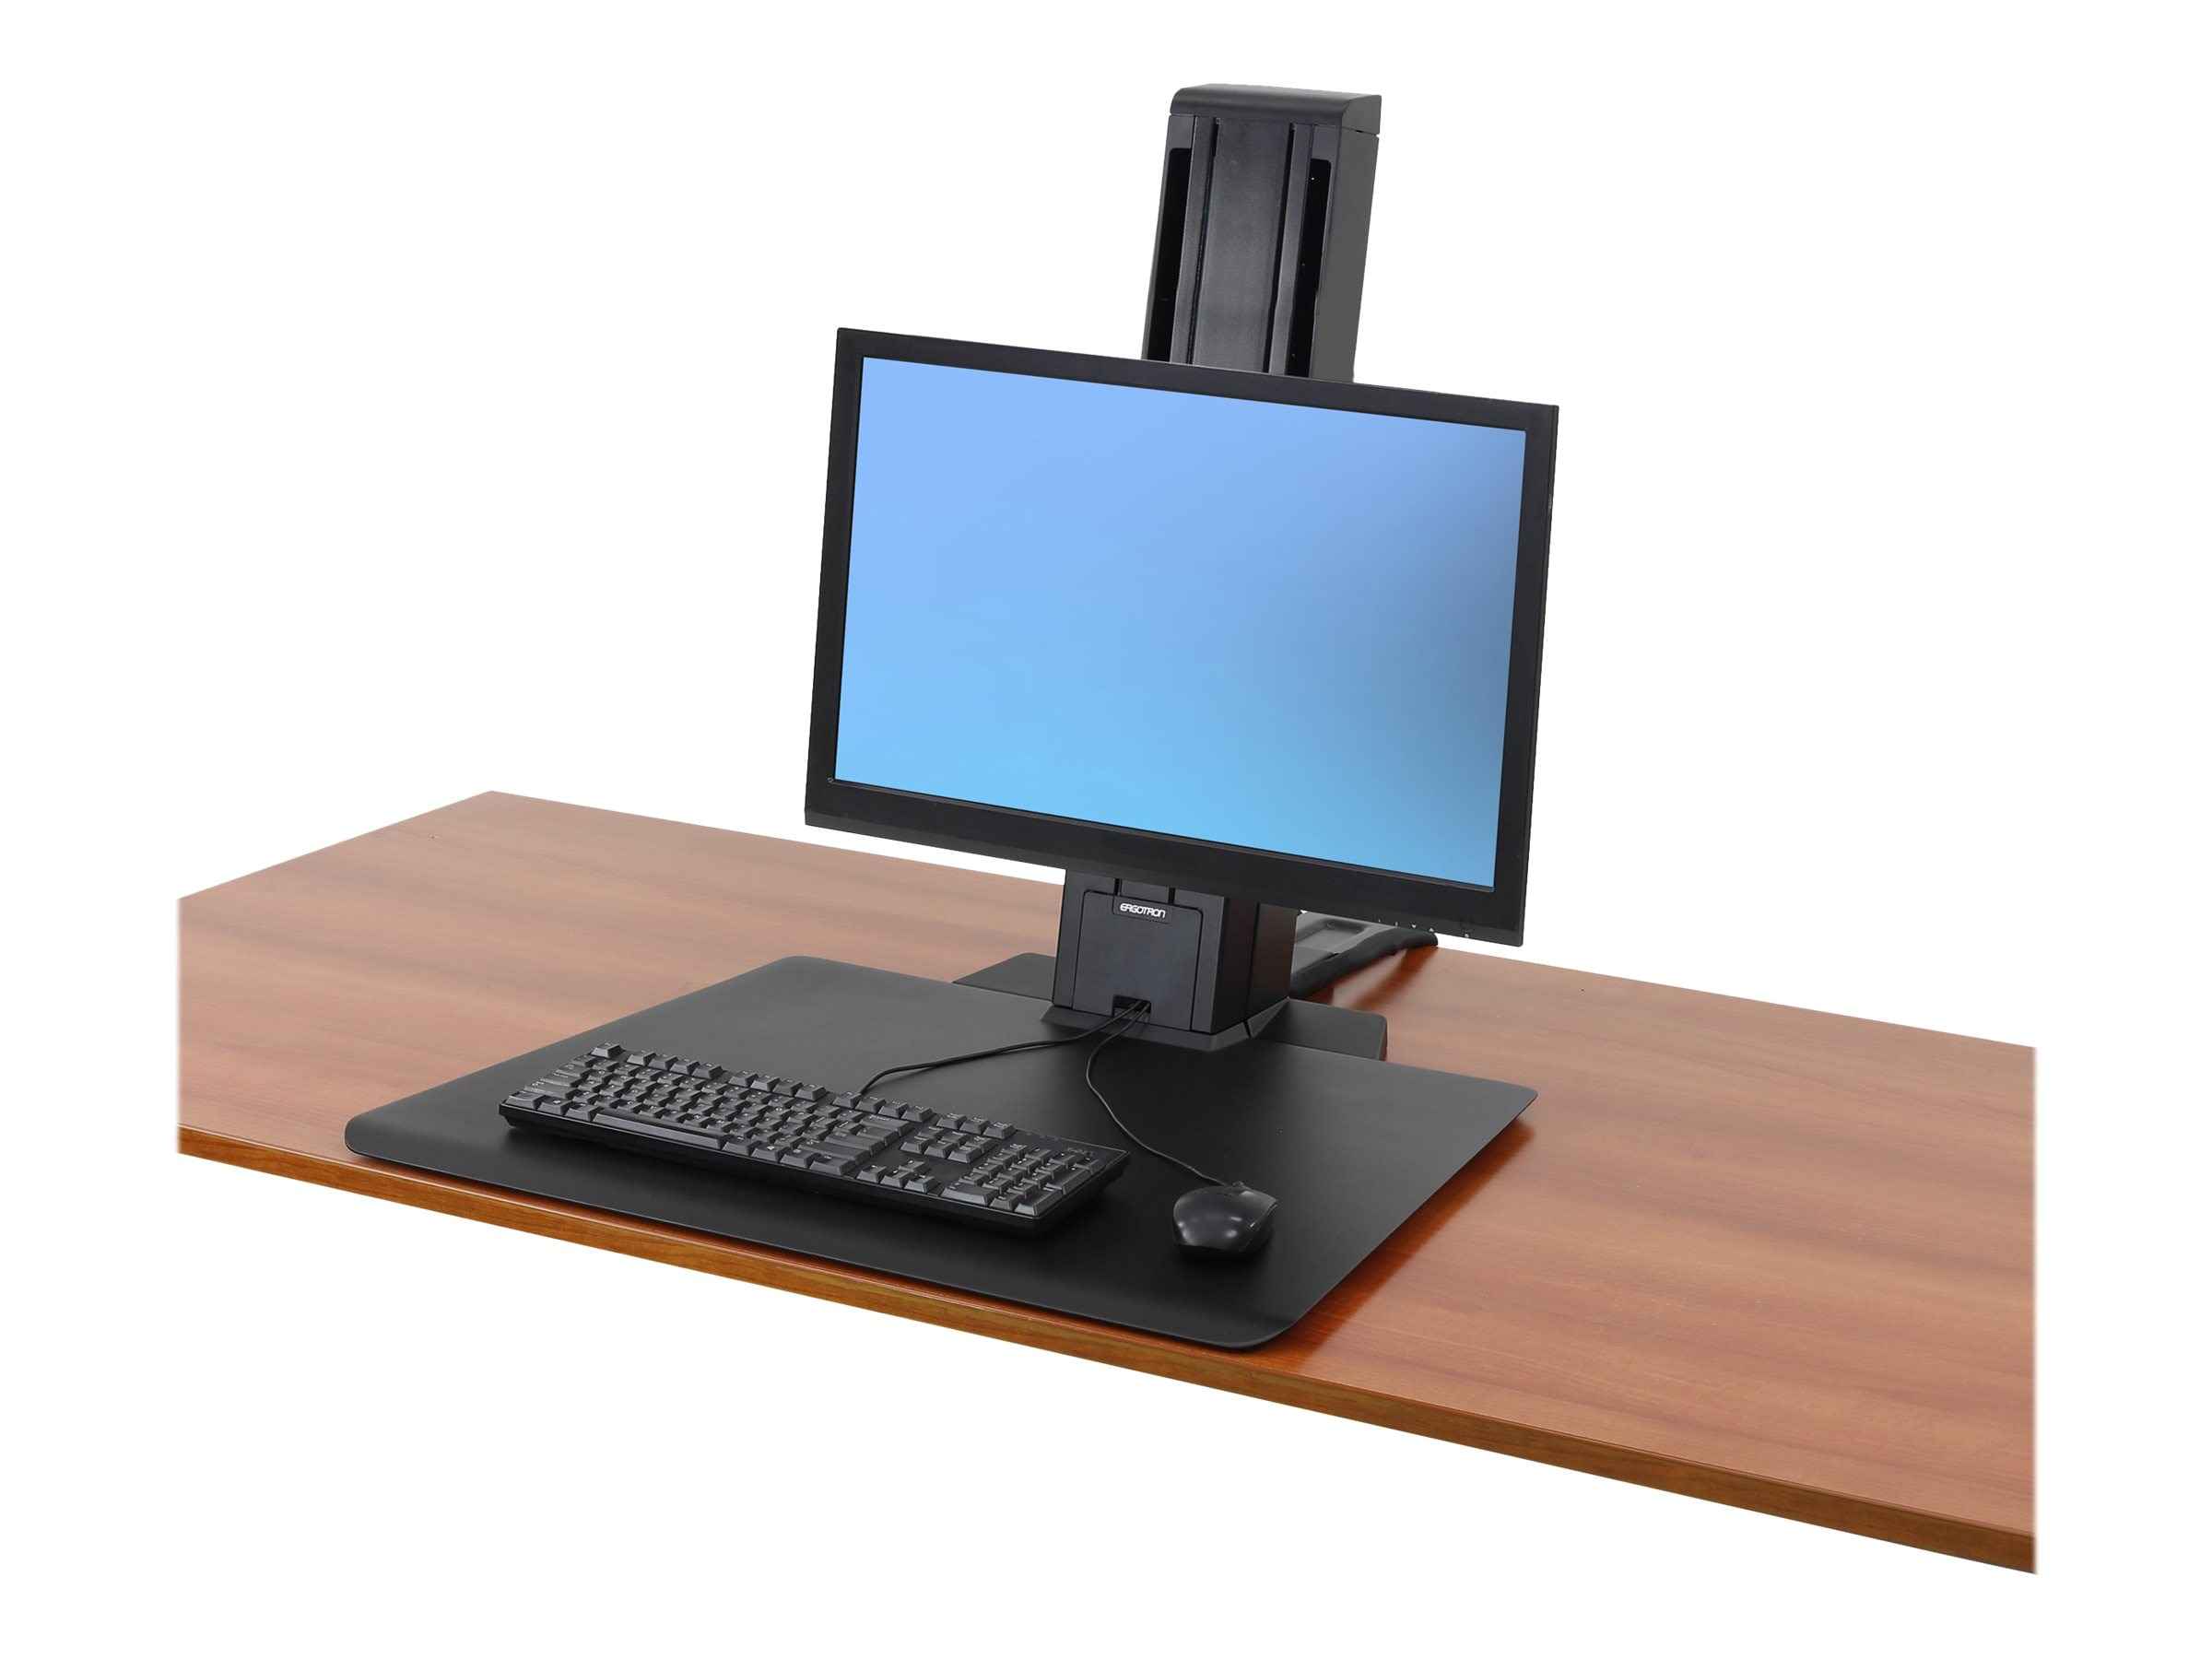 Ergotron WorkFit-SR, 1 Monitor, Sit-Stand Desktop Workstation, Black